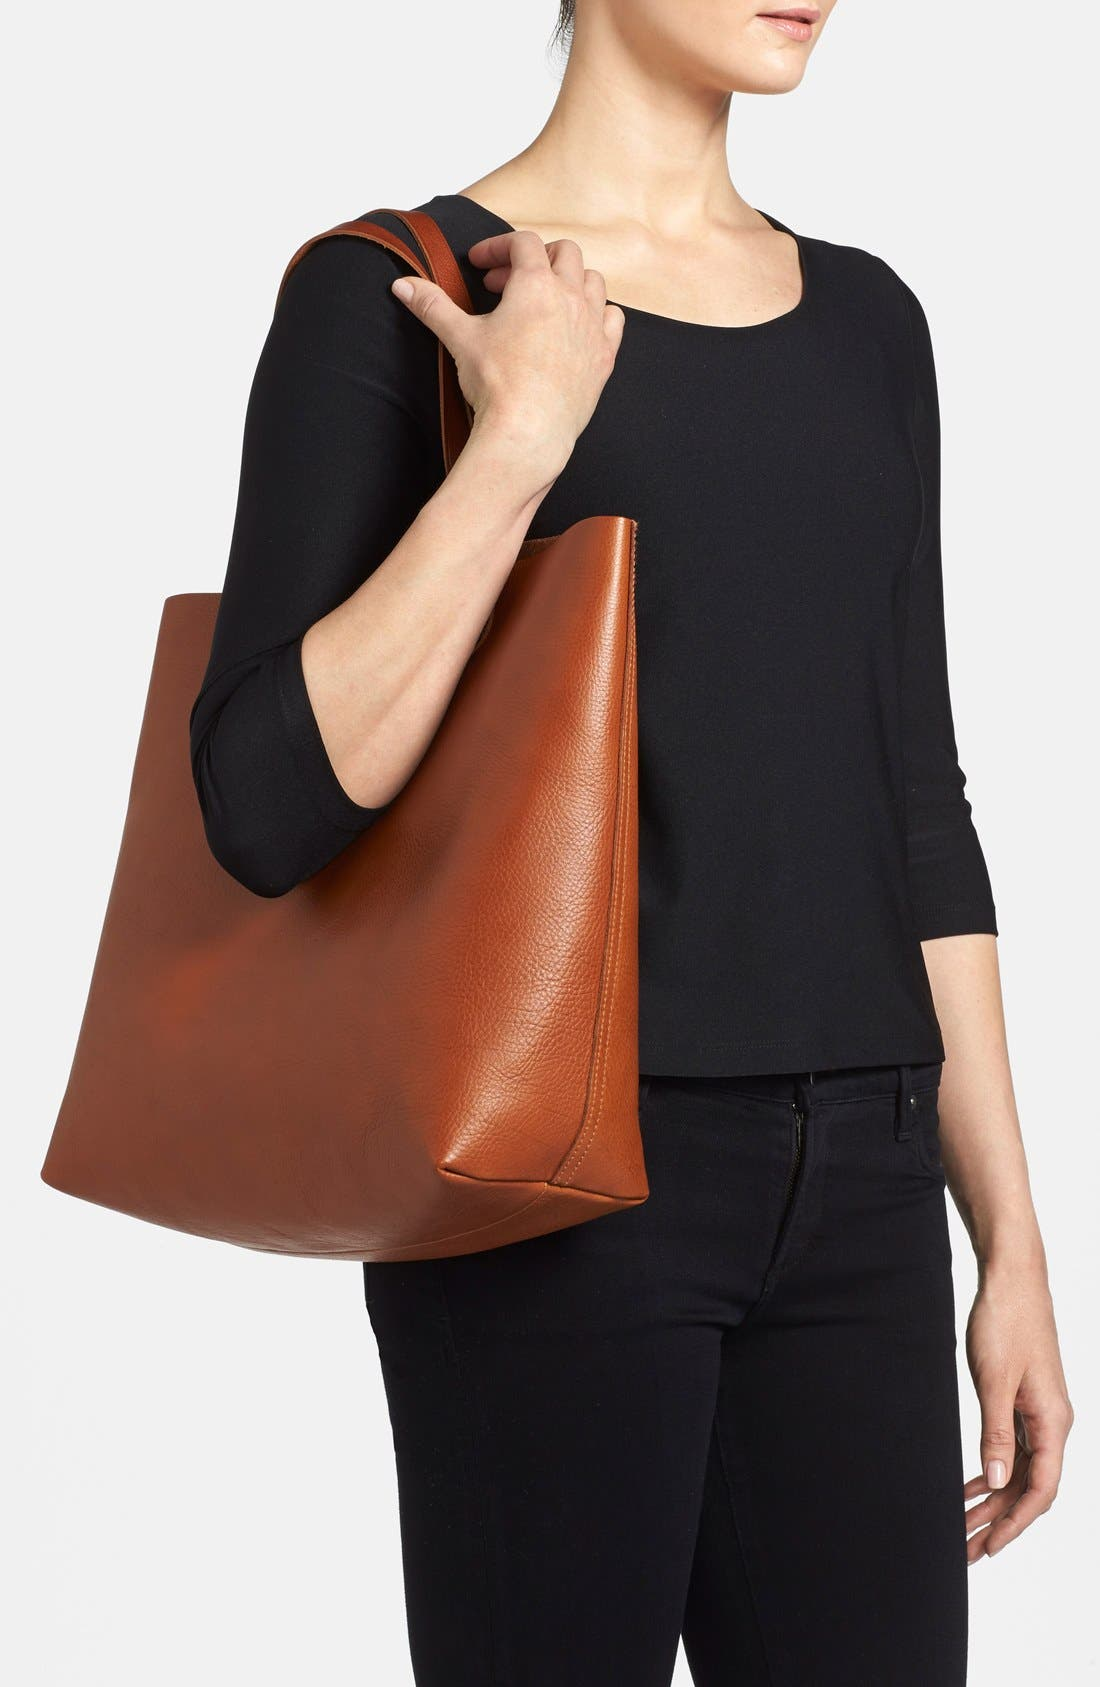 MADEWELL, 'The Transport' Leather Tote, Alternate thumbnail 11, color, ENGLISH SADDLE